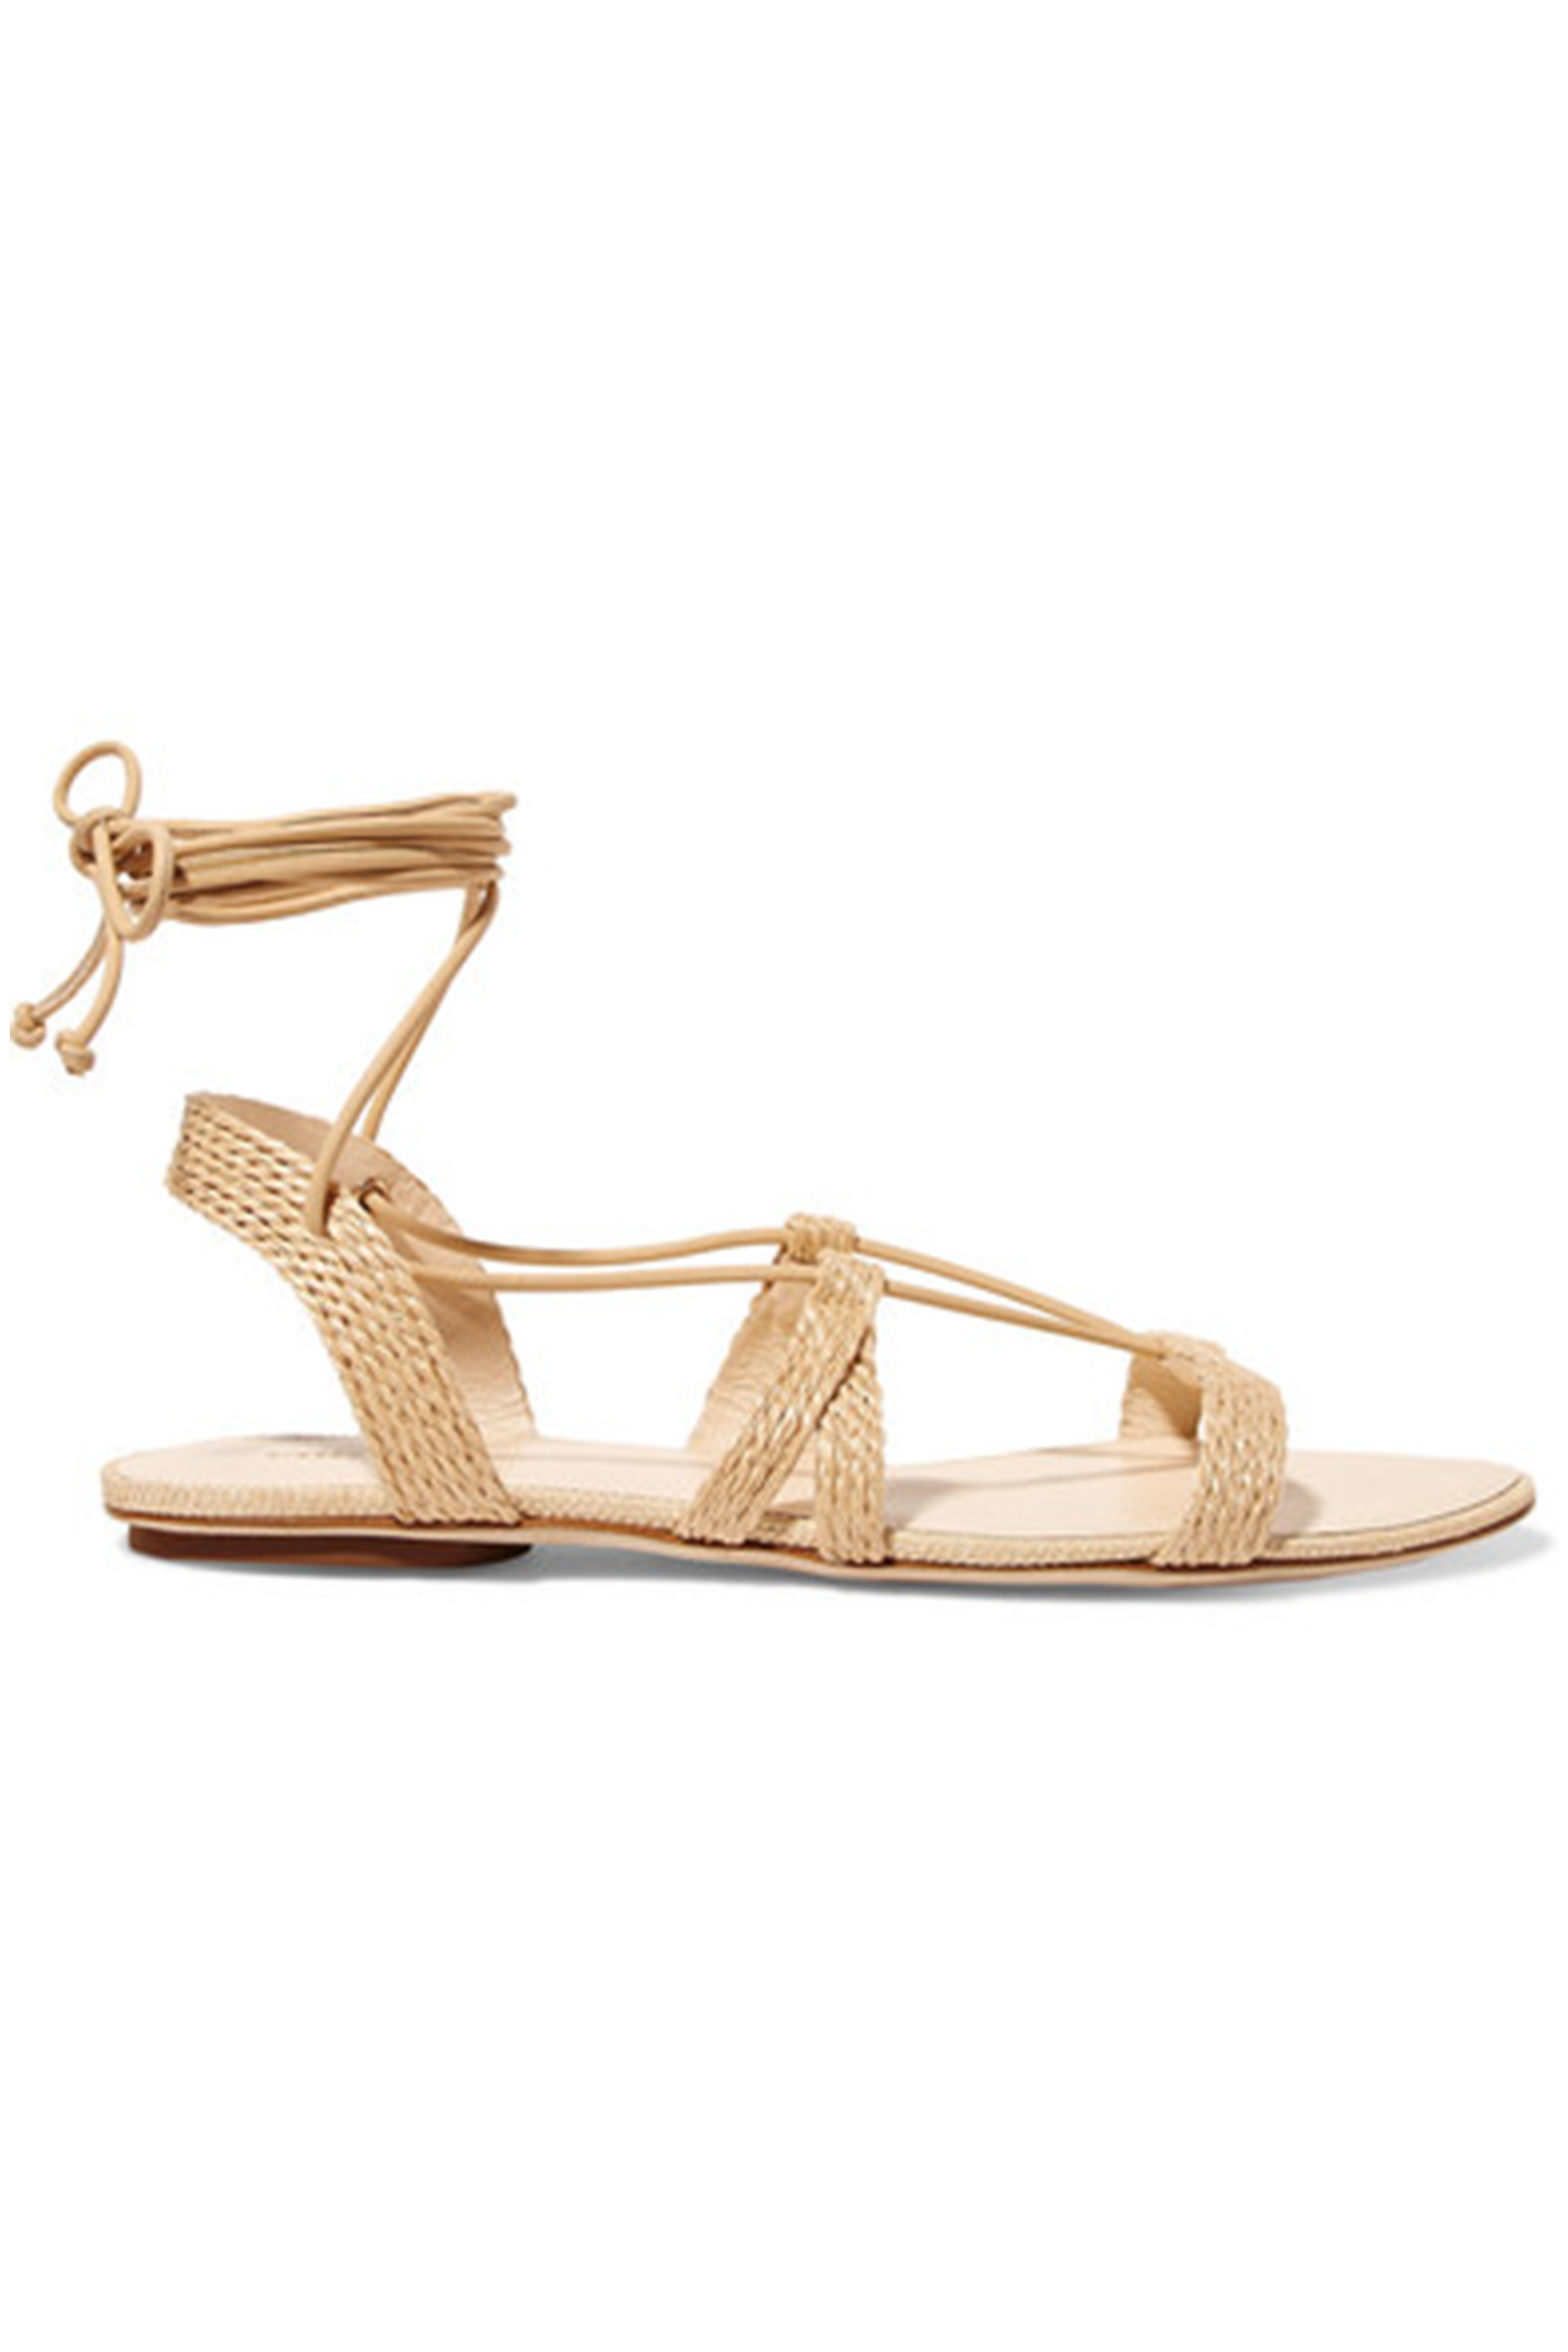 Click to Buy Cult Gaia Shoes